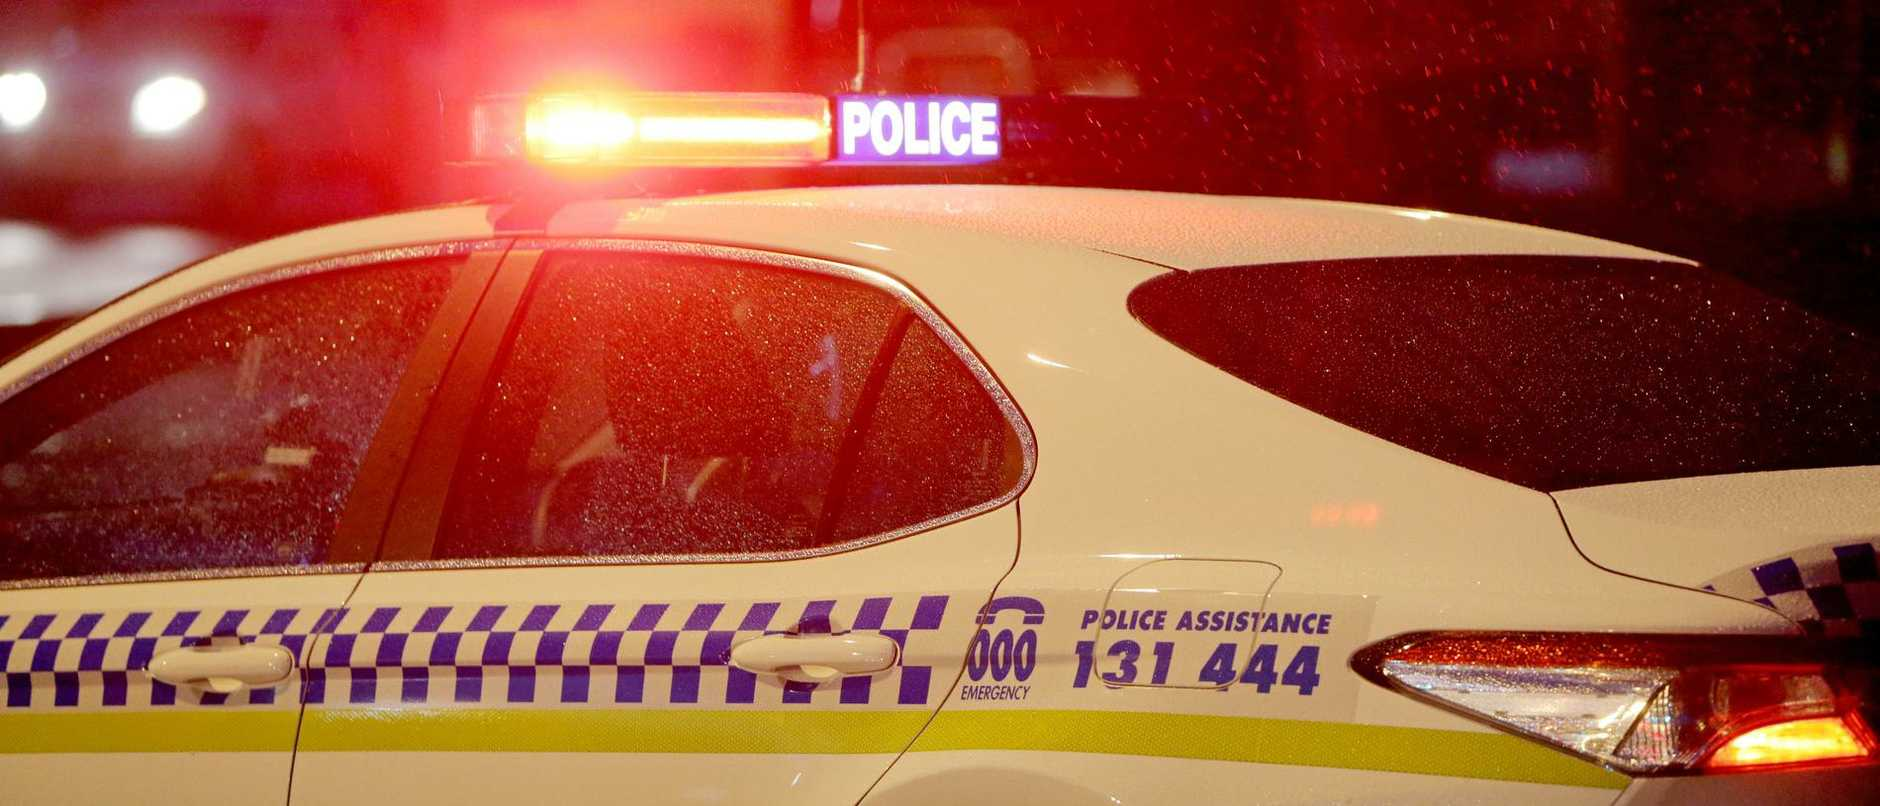 An unidentified man's body has been found in the middle of a road in NSW.